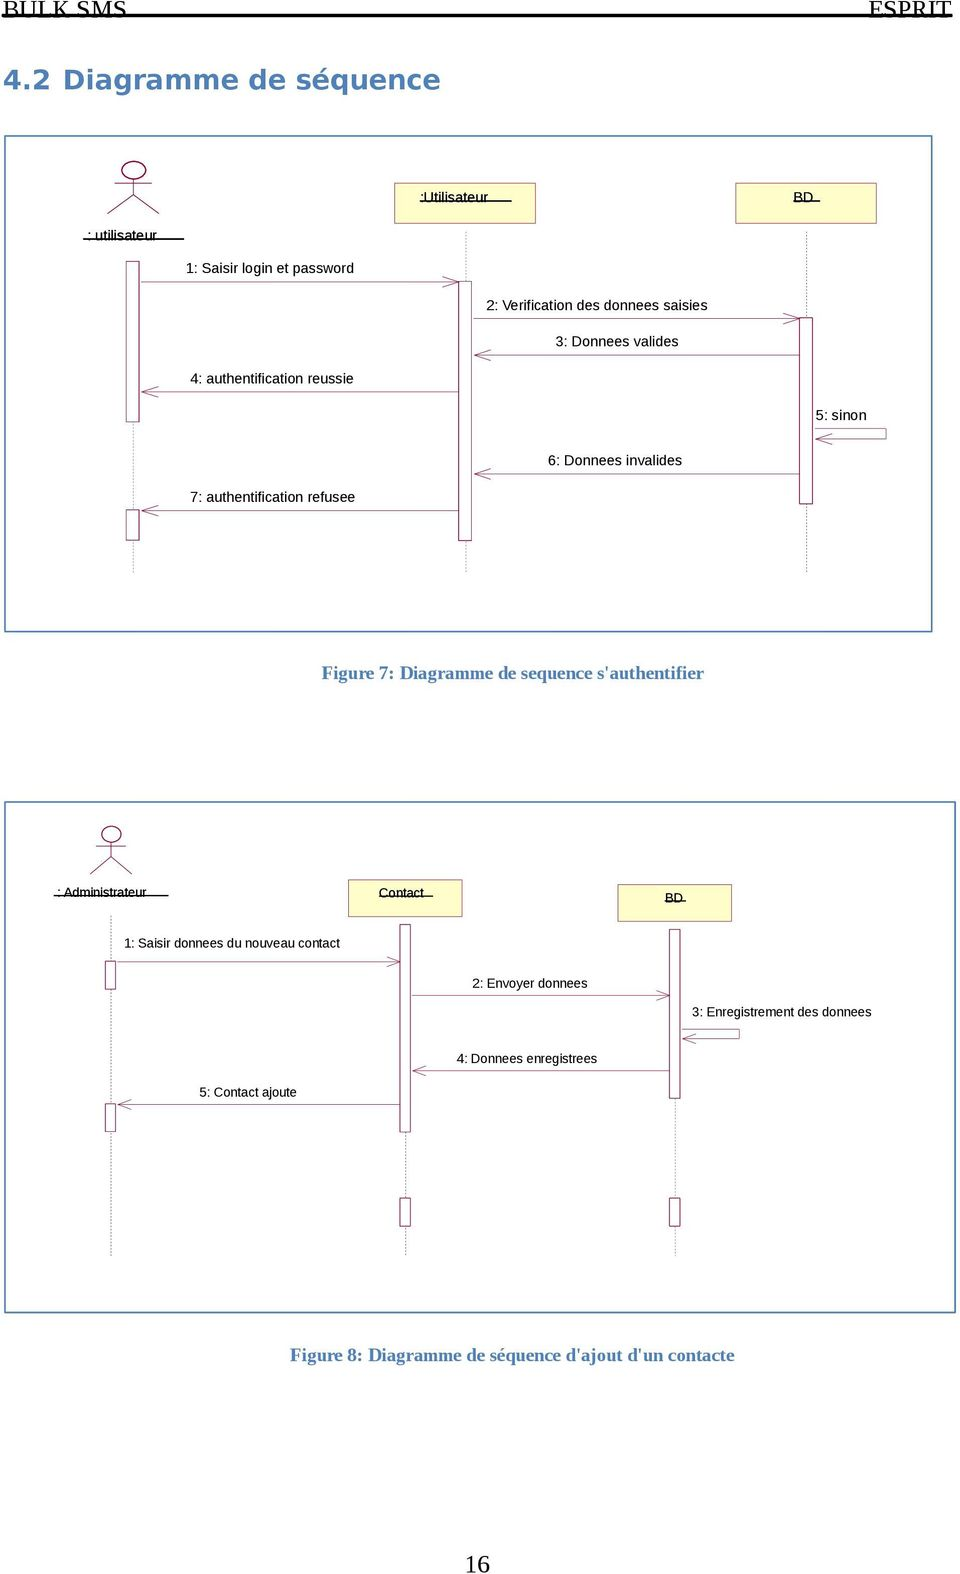 Diagramme de sequence s'authentifier : Administrateur Contact BD 1: Saisir donnees du nouveau contact 2: Envoyer donnees